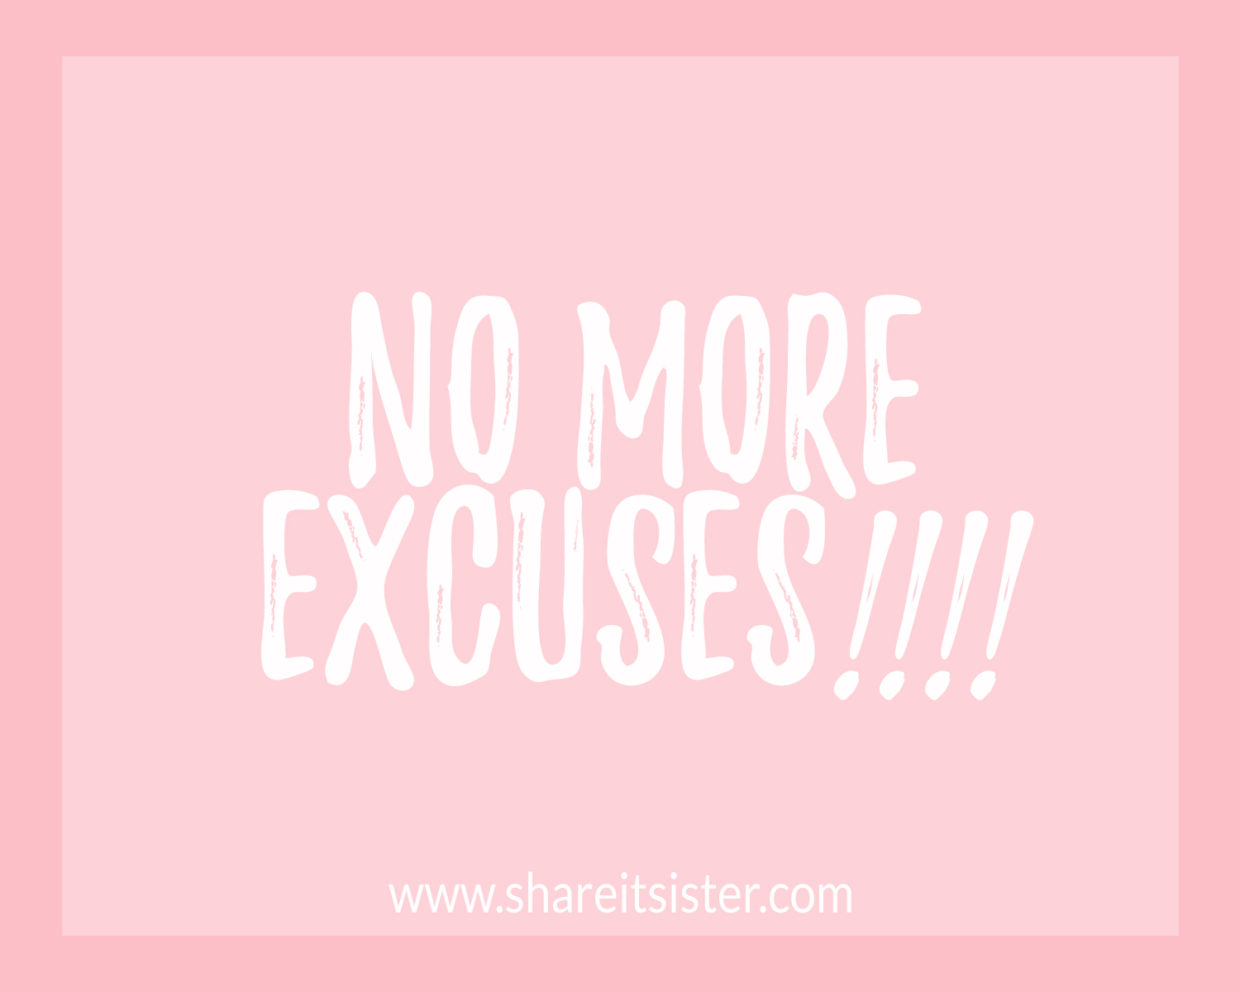 No More Excuses, Stop focusing on the bad, focus on the good!